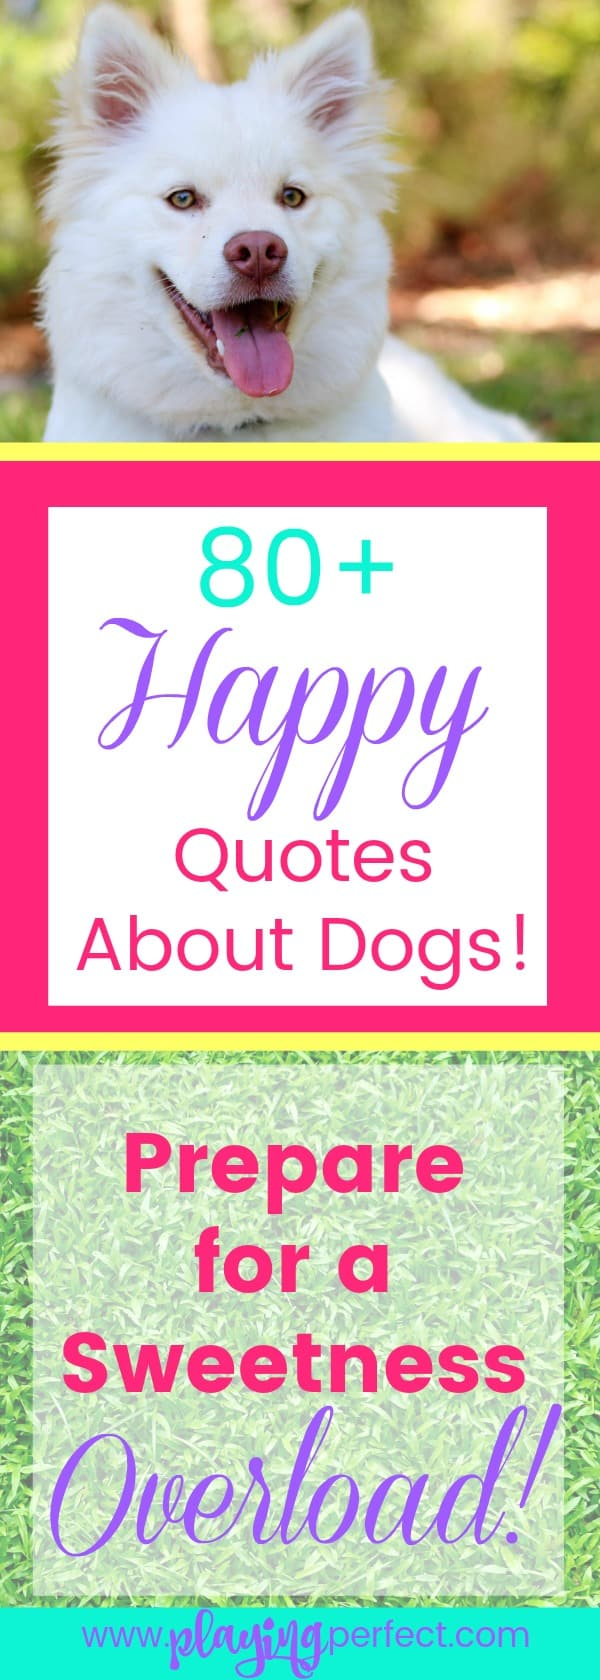 Quotes To Make You Happy 84 Quotes About Dogs That Will Make You Happy You're A Dog Mom